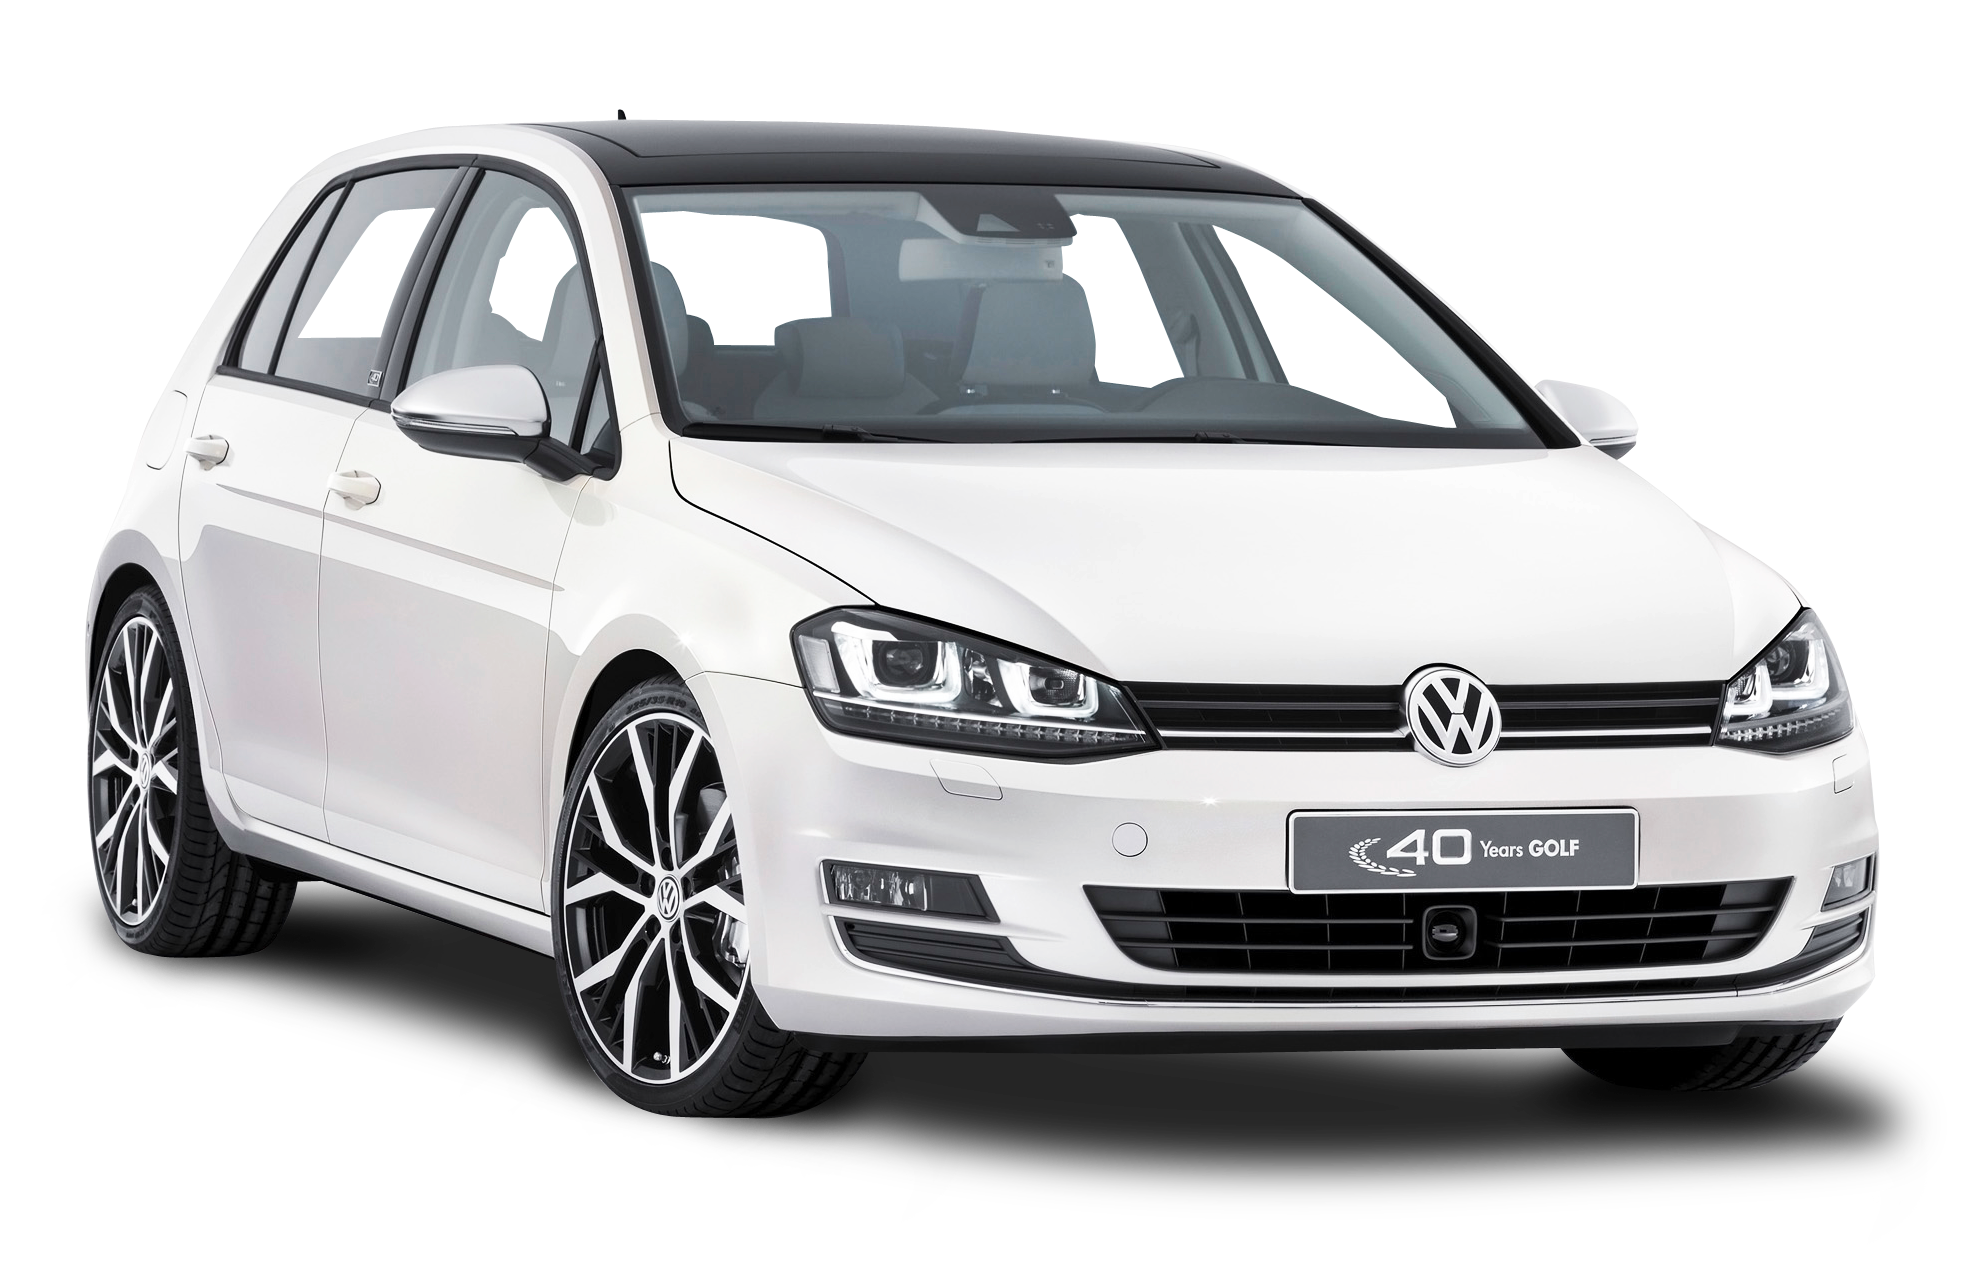 Vw gti clipart png transparent library Download Golf Gti Volkswagen Car 2014 White Clipart PNG Free ... png transparent library